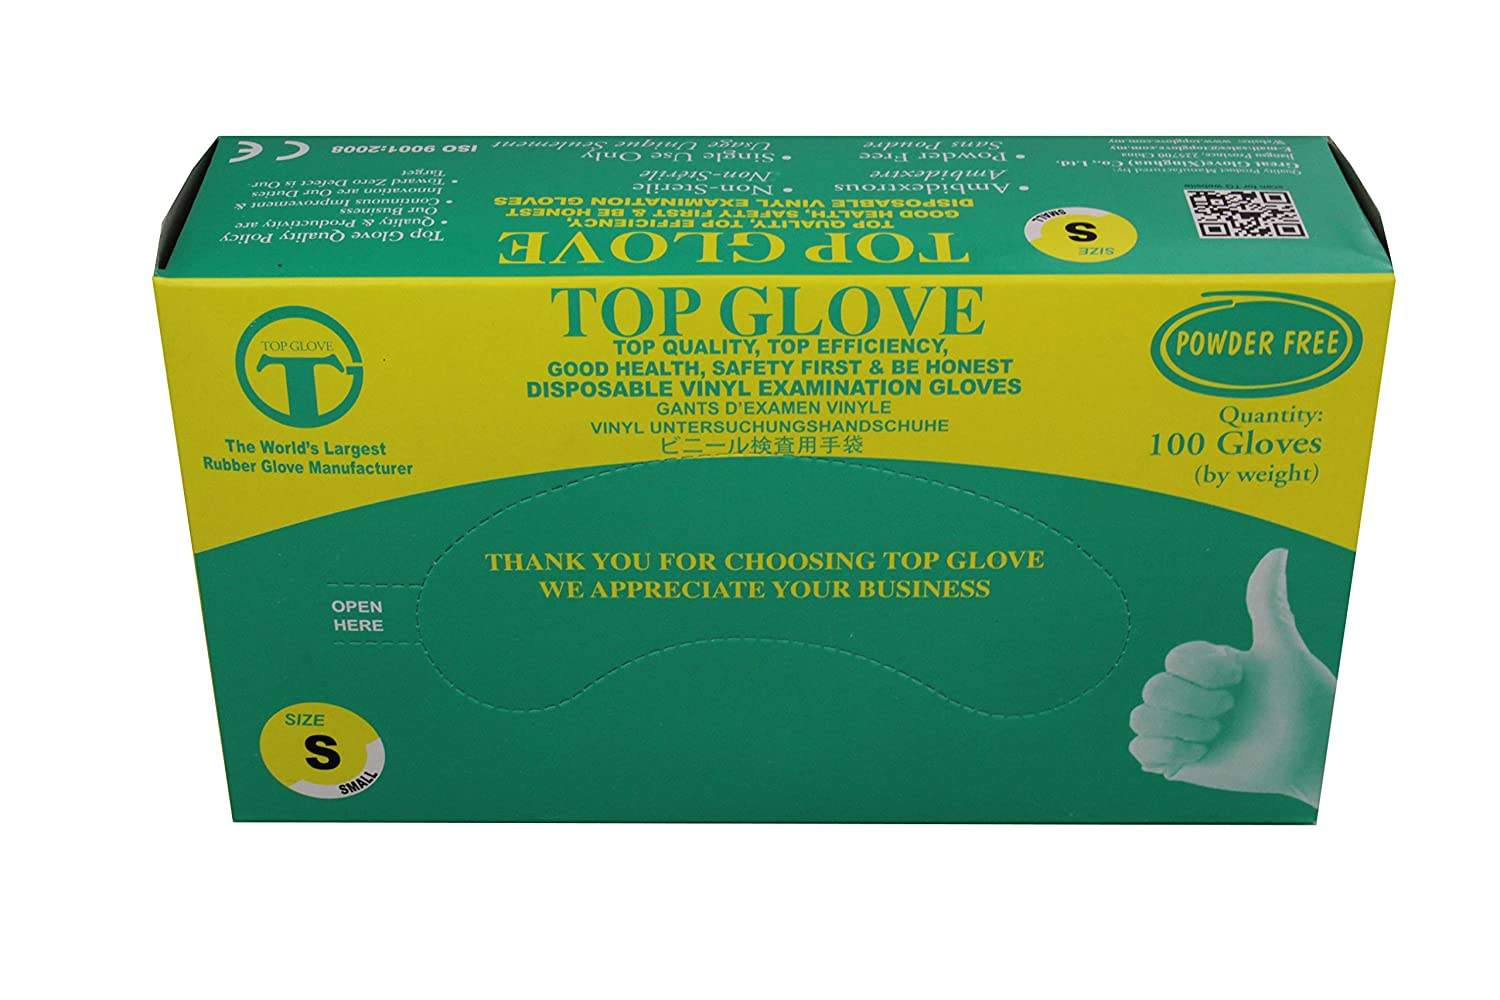 Top Glove Powder Free Disposable Vinyl Gloves - AQL 1.5 - Box of 100 (Medium) 6939726671024